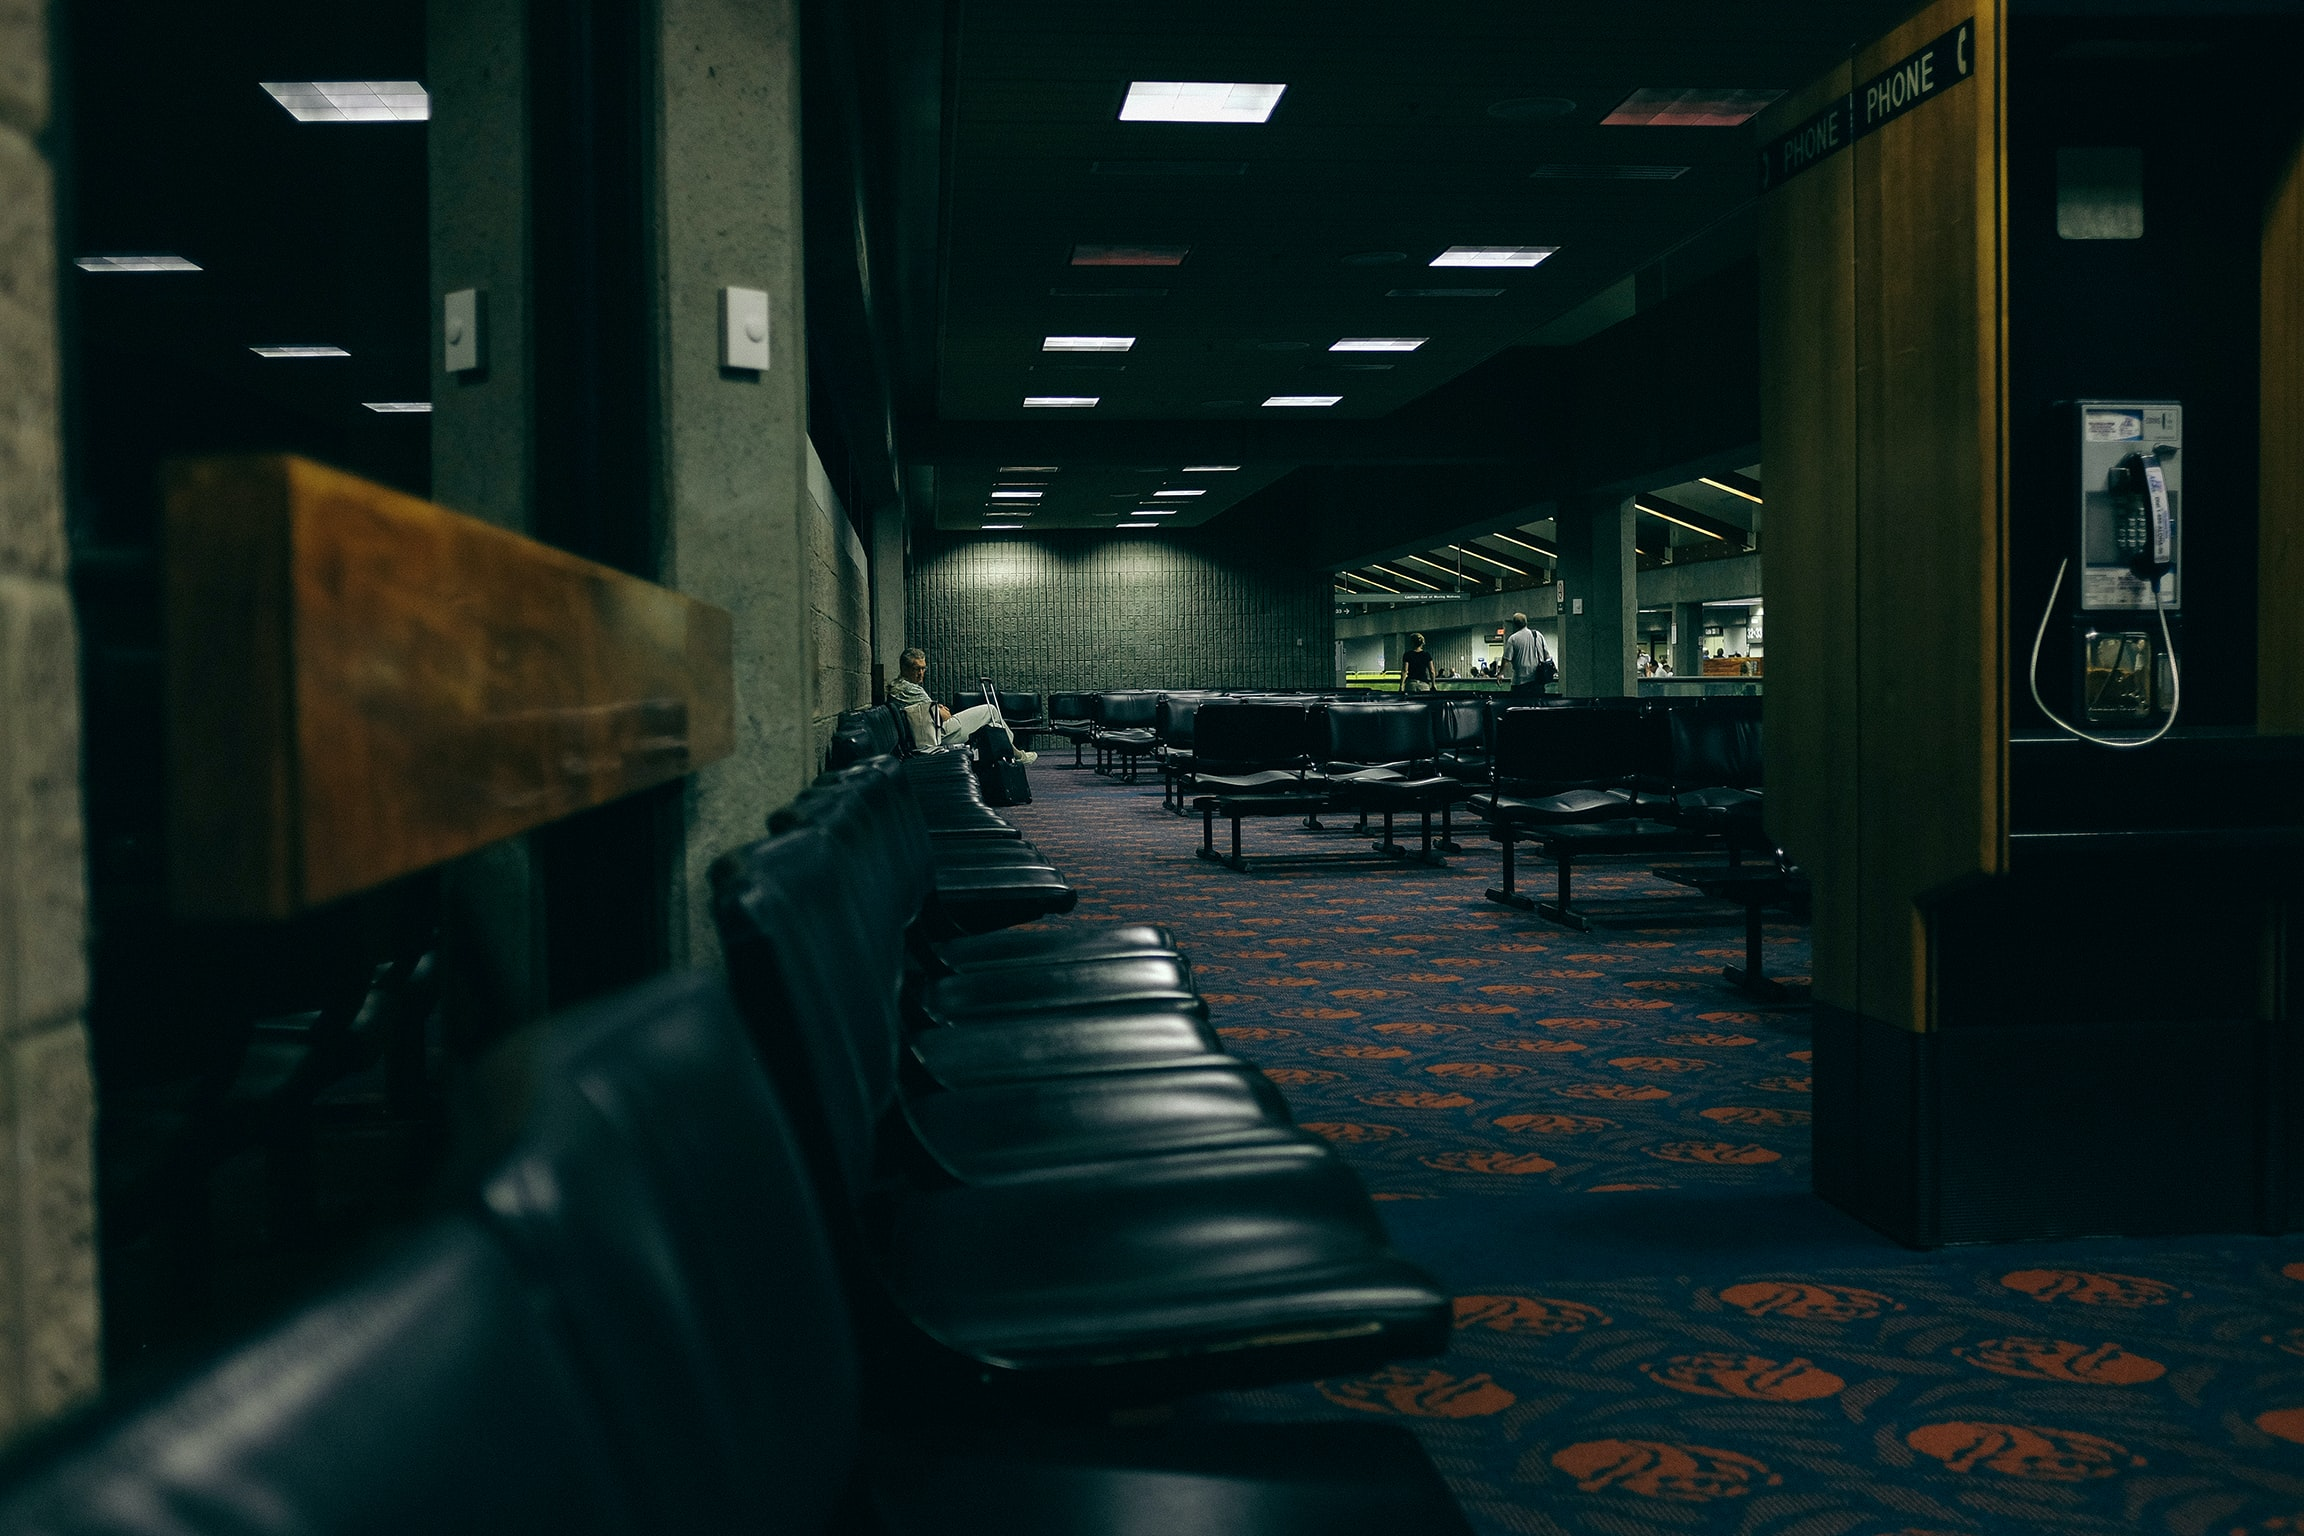 Deserted airport waiting room in an airport